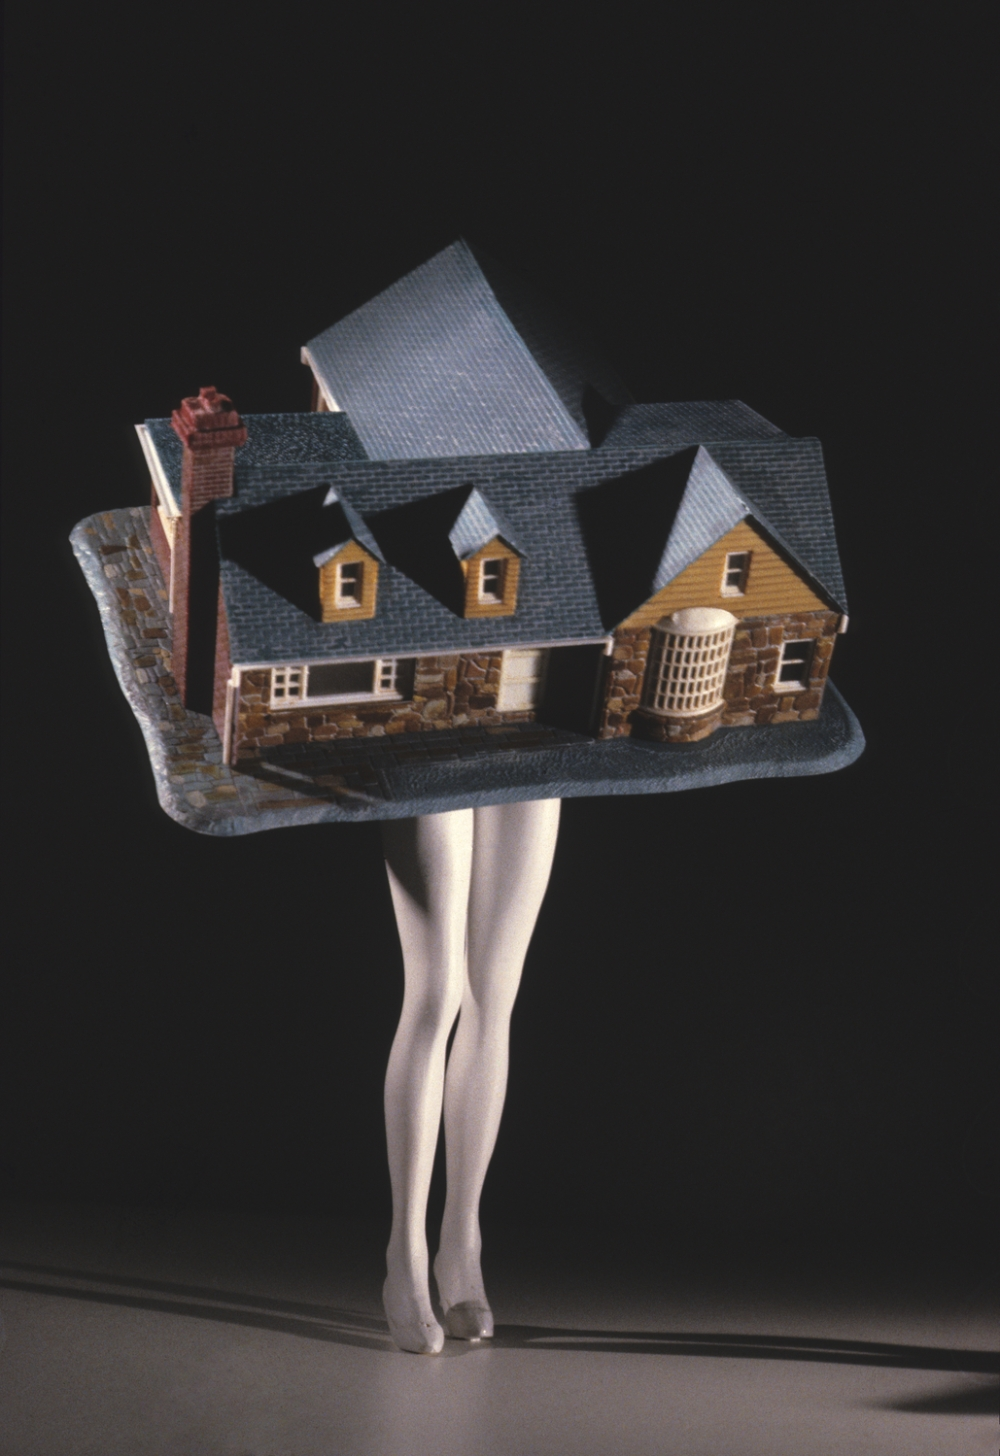 Simmons-Walking House_5 x 7 in. at 300 dpi _JPG_